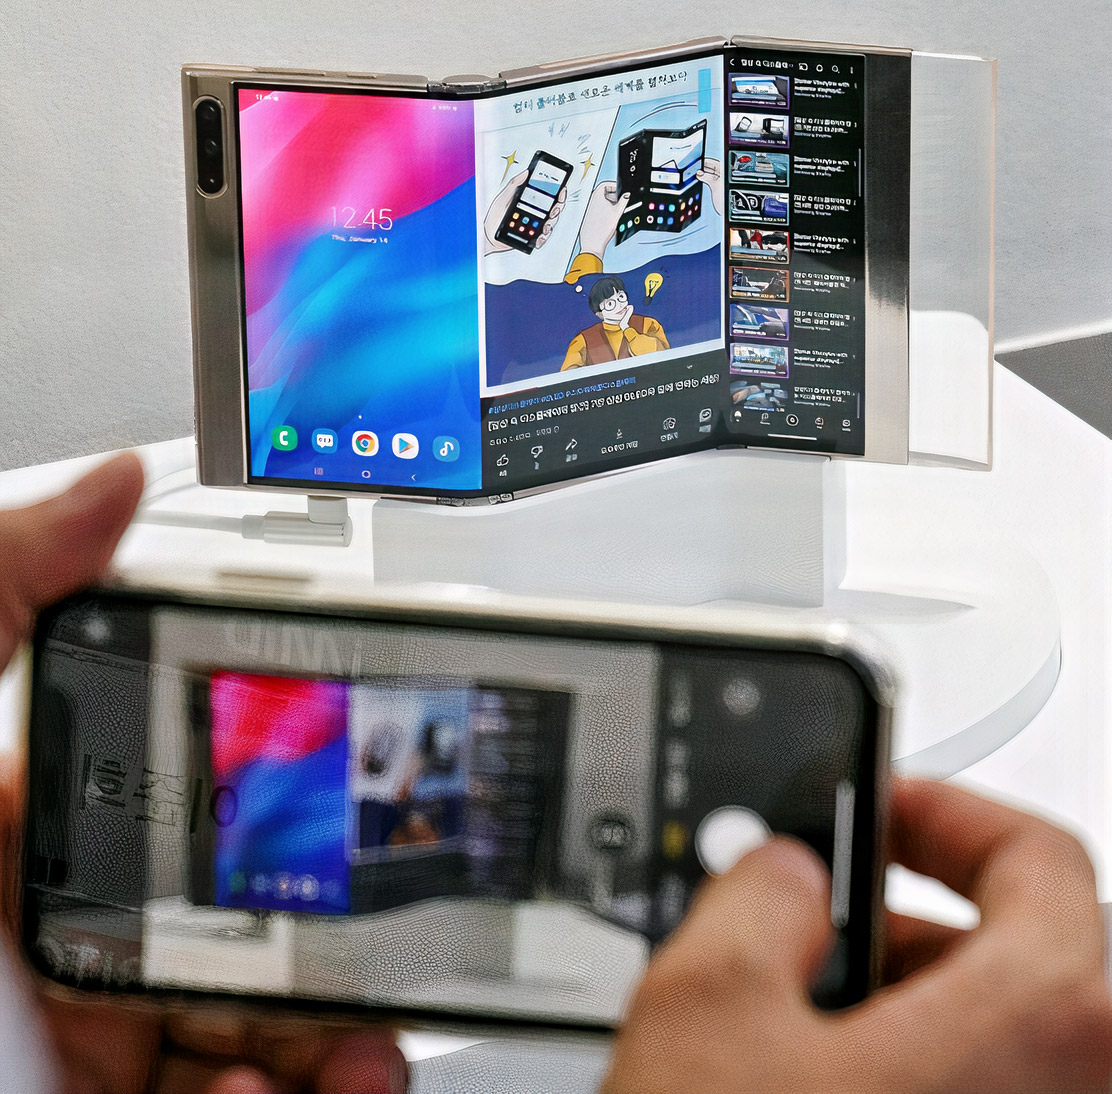 Samsung Flex In and Out Flexible Display IMID 2021